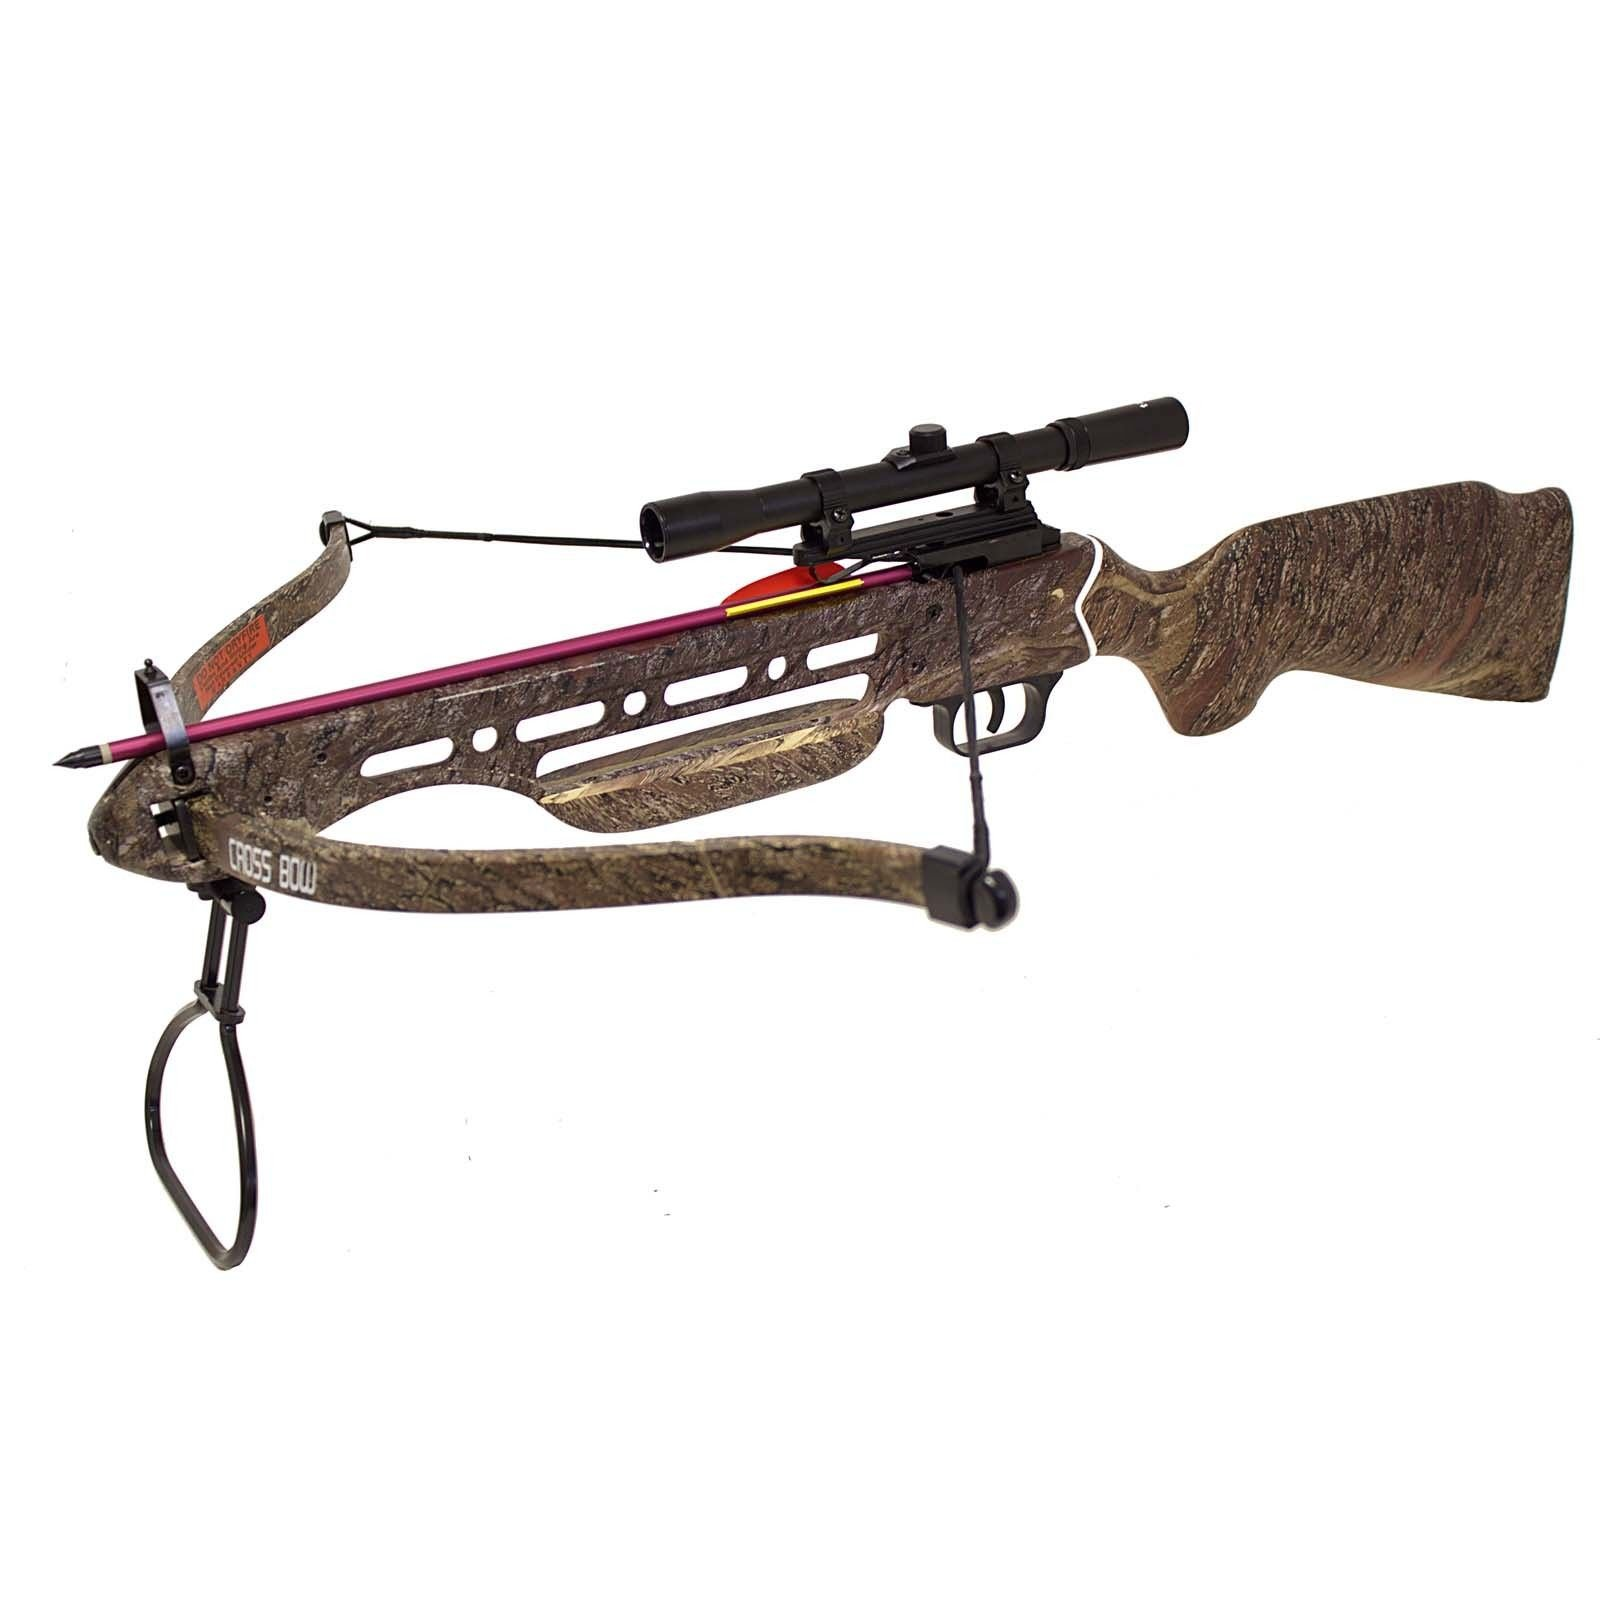 Hunting Crossbows 150 lbs Real Wooden Camo Hunting Crossbow + 8 Arrows Bolts + 4x20 Scope Crossbow Bolts